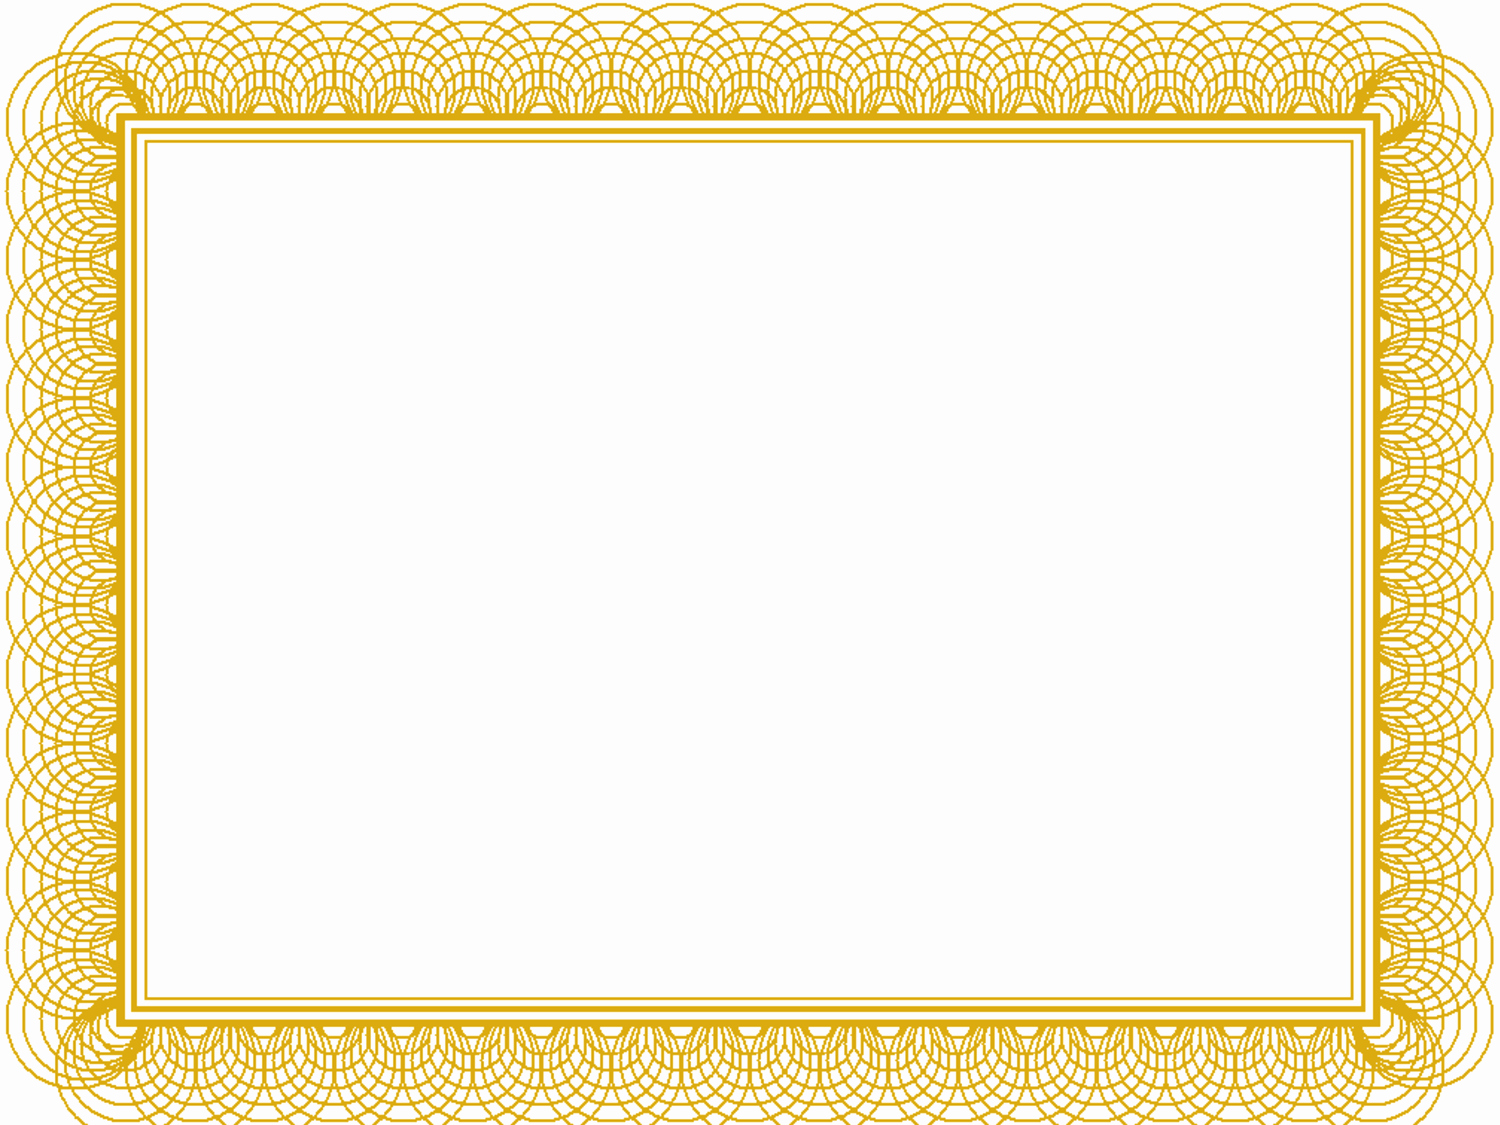 Free Gold Border Templates Fresh Fastpitch softball Field Backgrounds